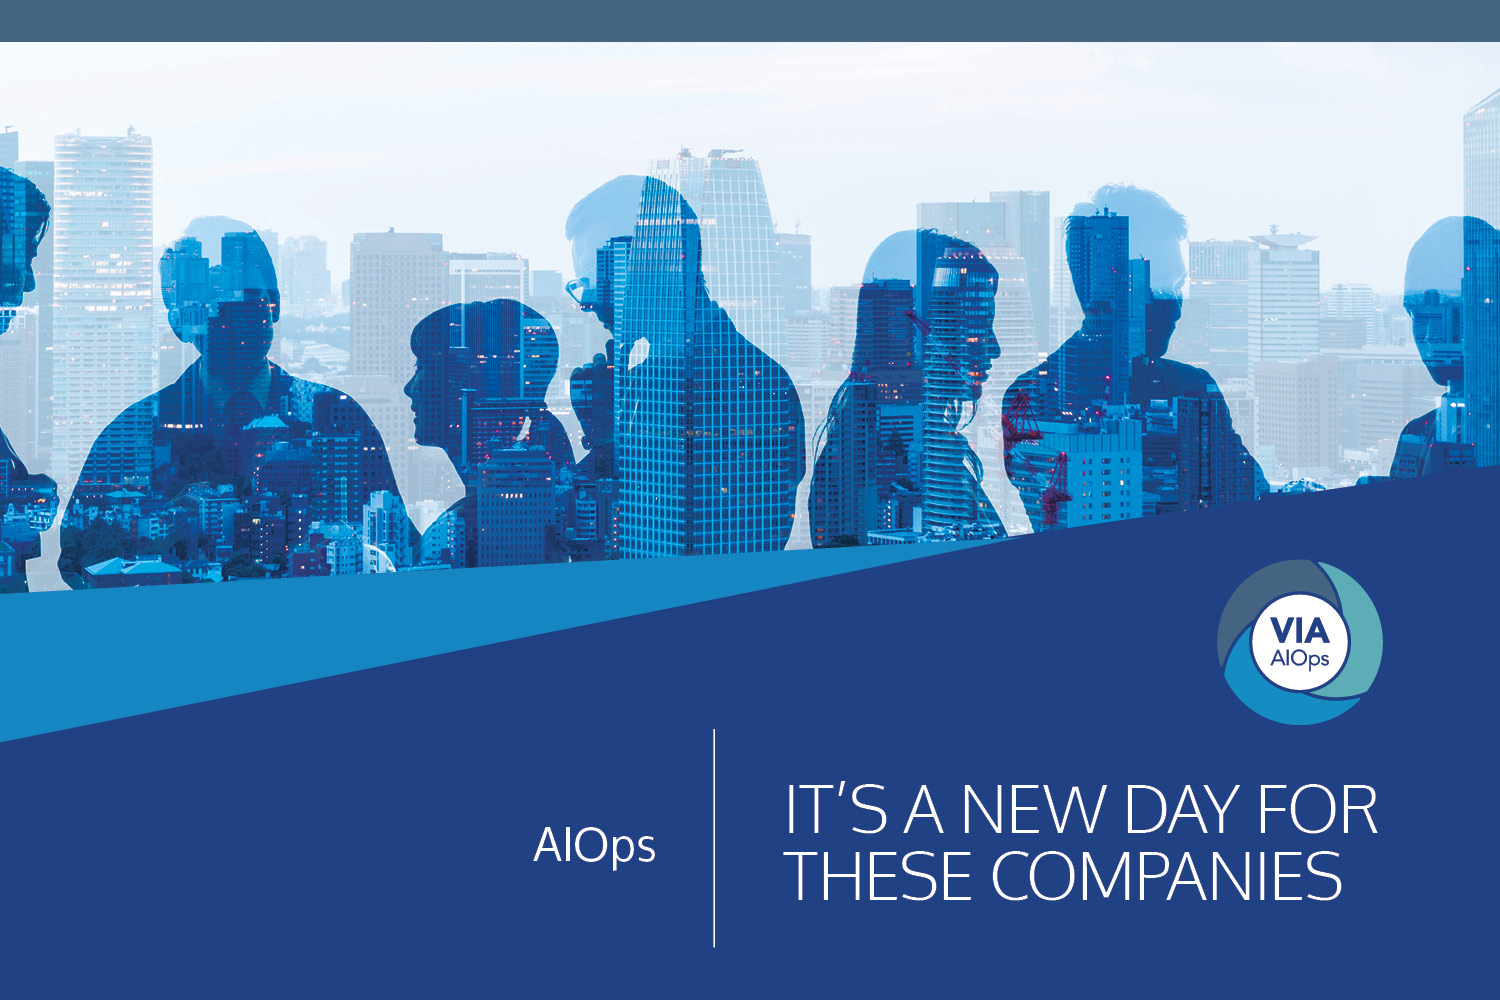 Download the Use Cases: AIOps: It's A New Day For These Companies